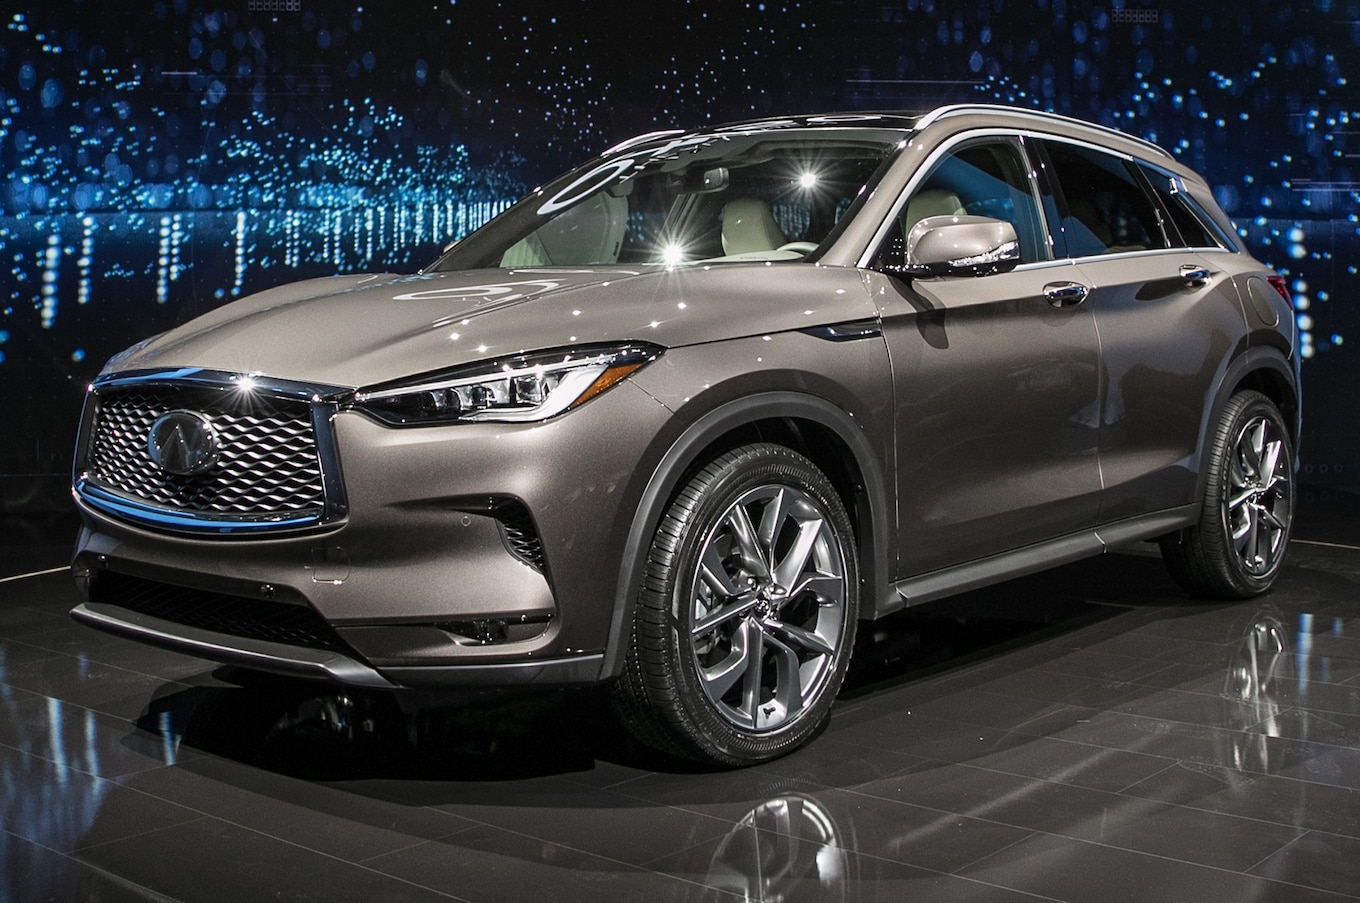 2019 Infiniti Qx50 Revealed Ahead Of La Auto Show Near